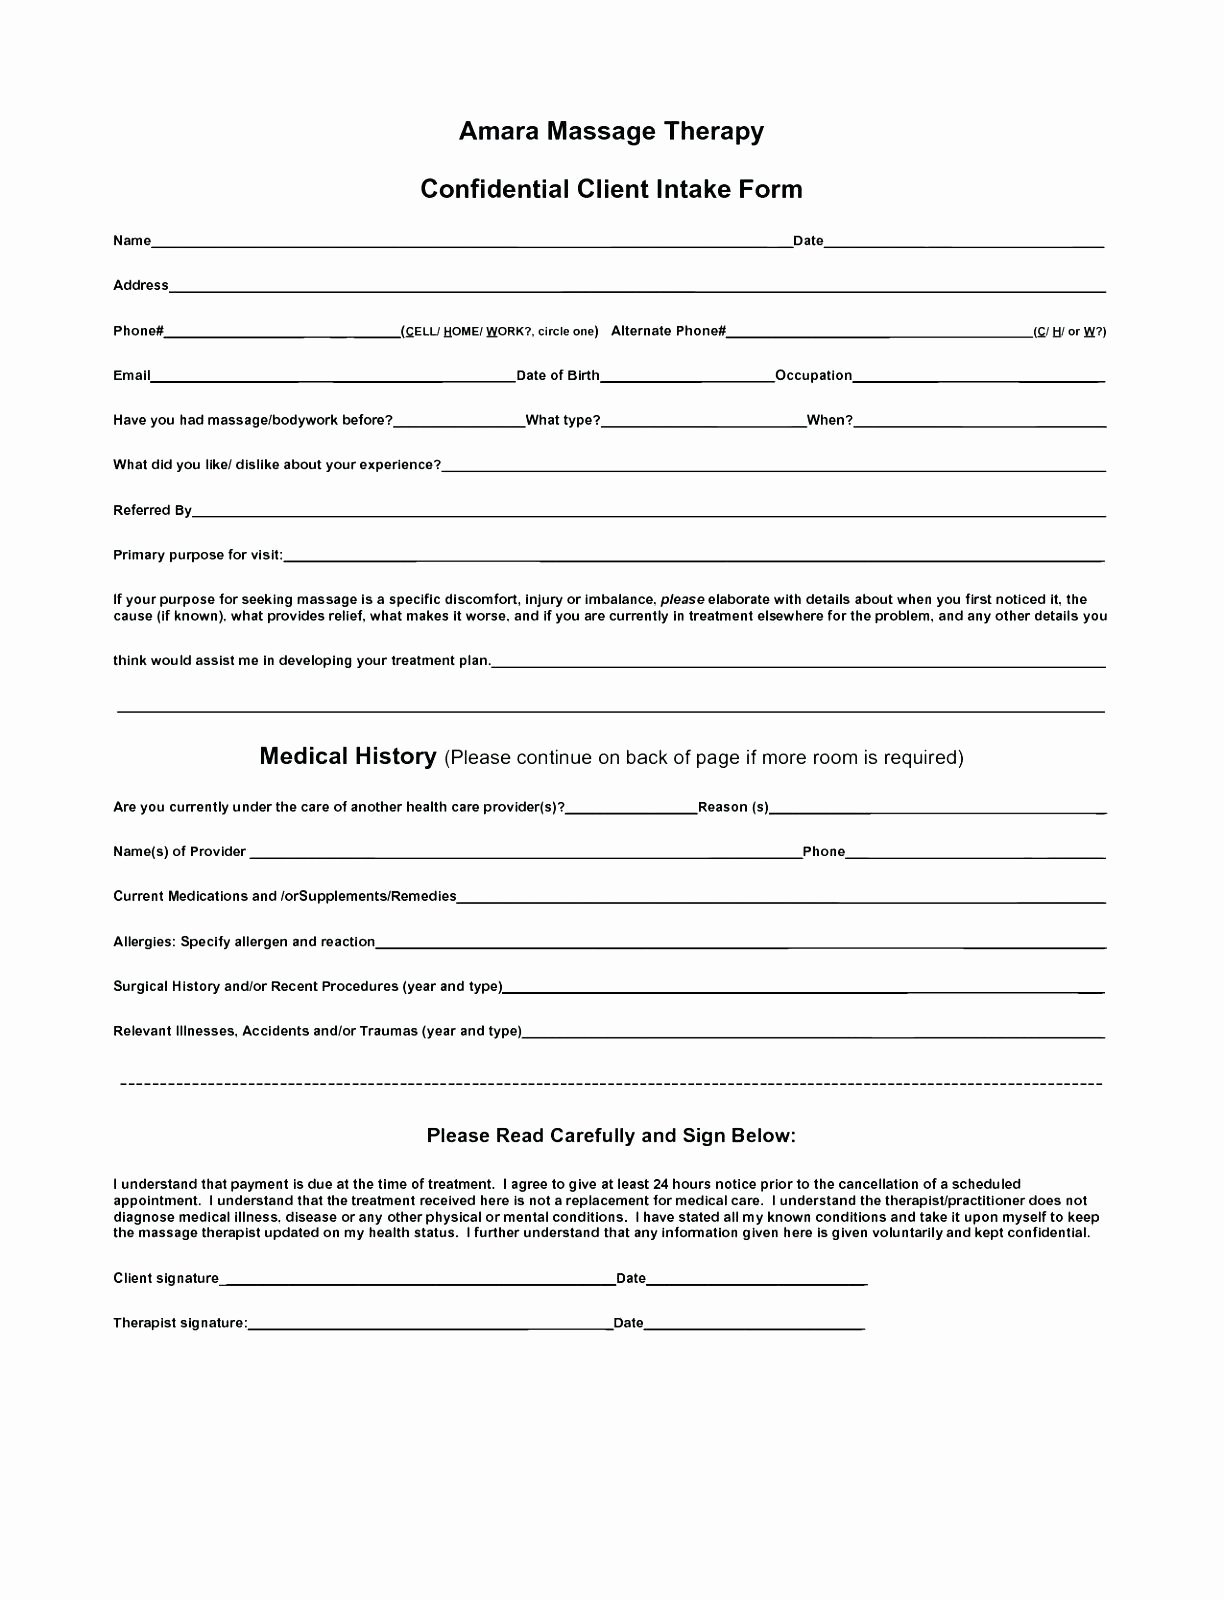 Patient Intake form Template Best Of Patient Intake form Templ On Consultation Sheets Manqal